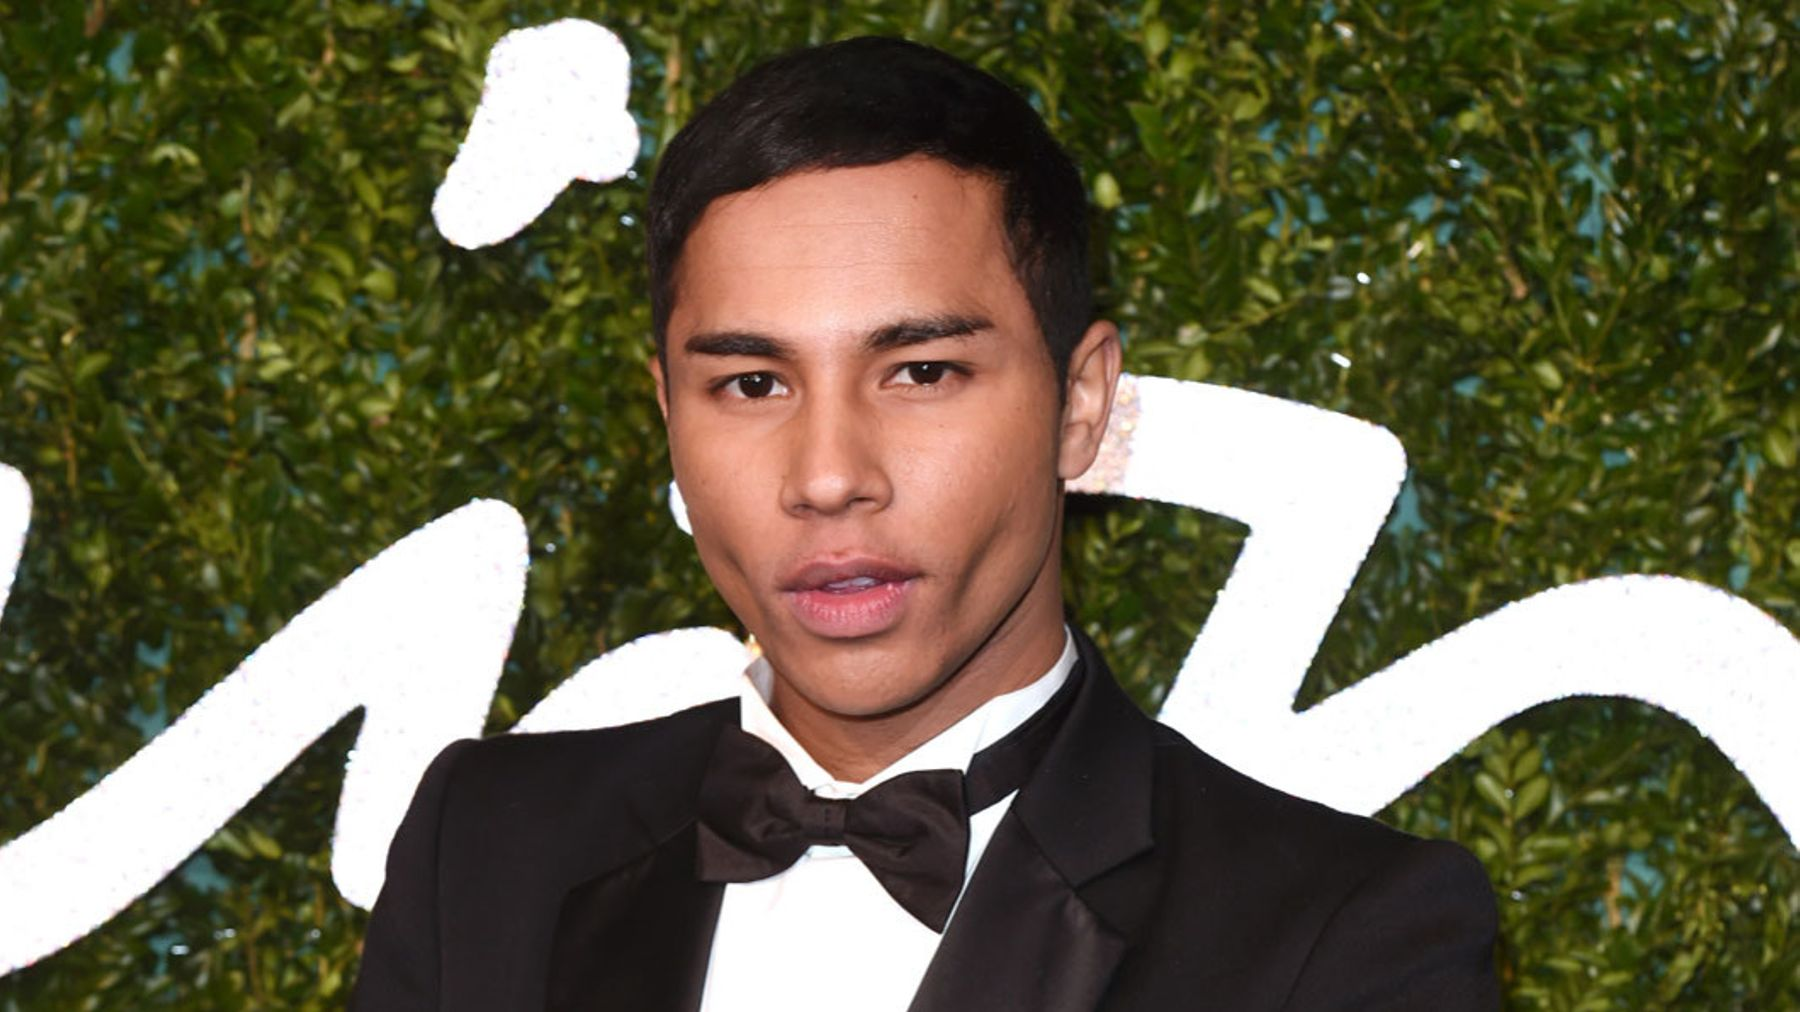 b4495735146e Olivier Rousteing On His London Flagship Store, Selfie Guidance And ...